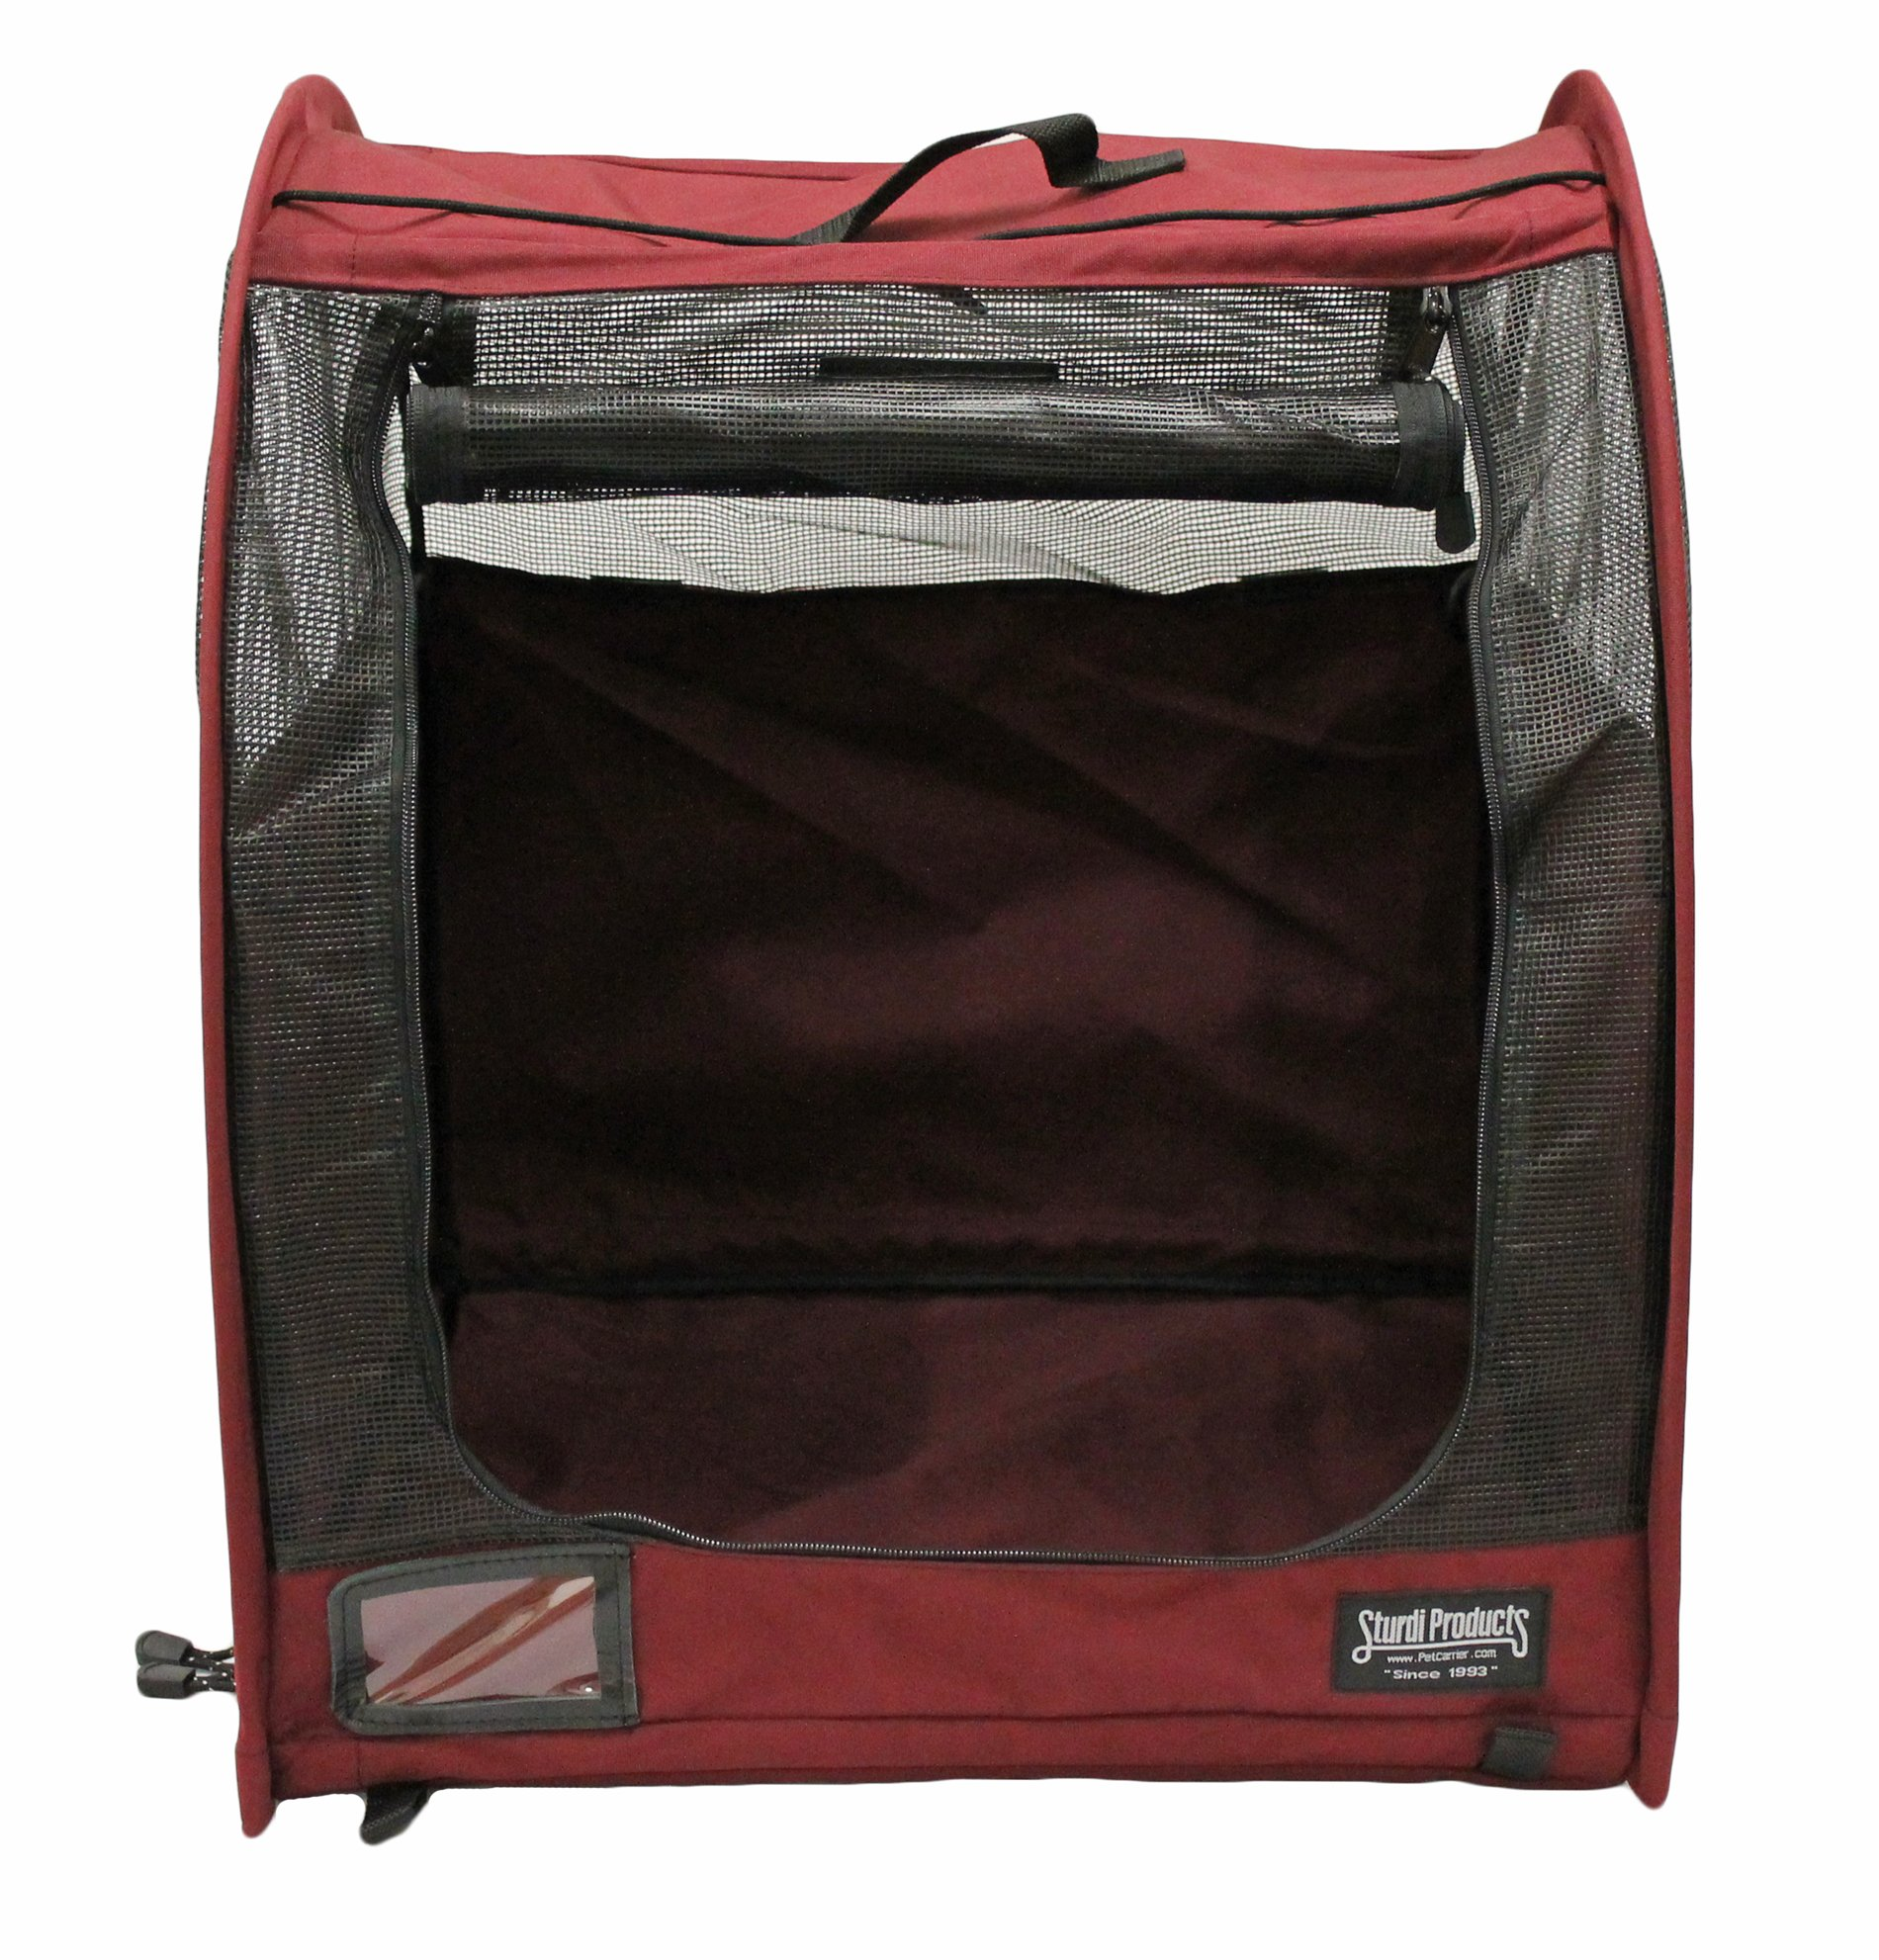 Sturdi Products Car-Go Single Pop-Up Pet Shelter, Bordeaux